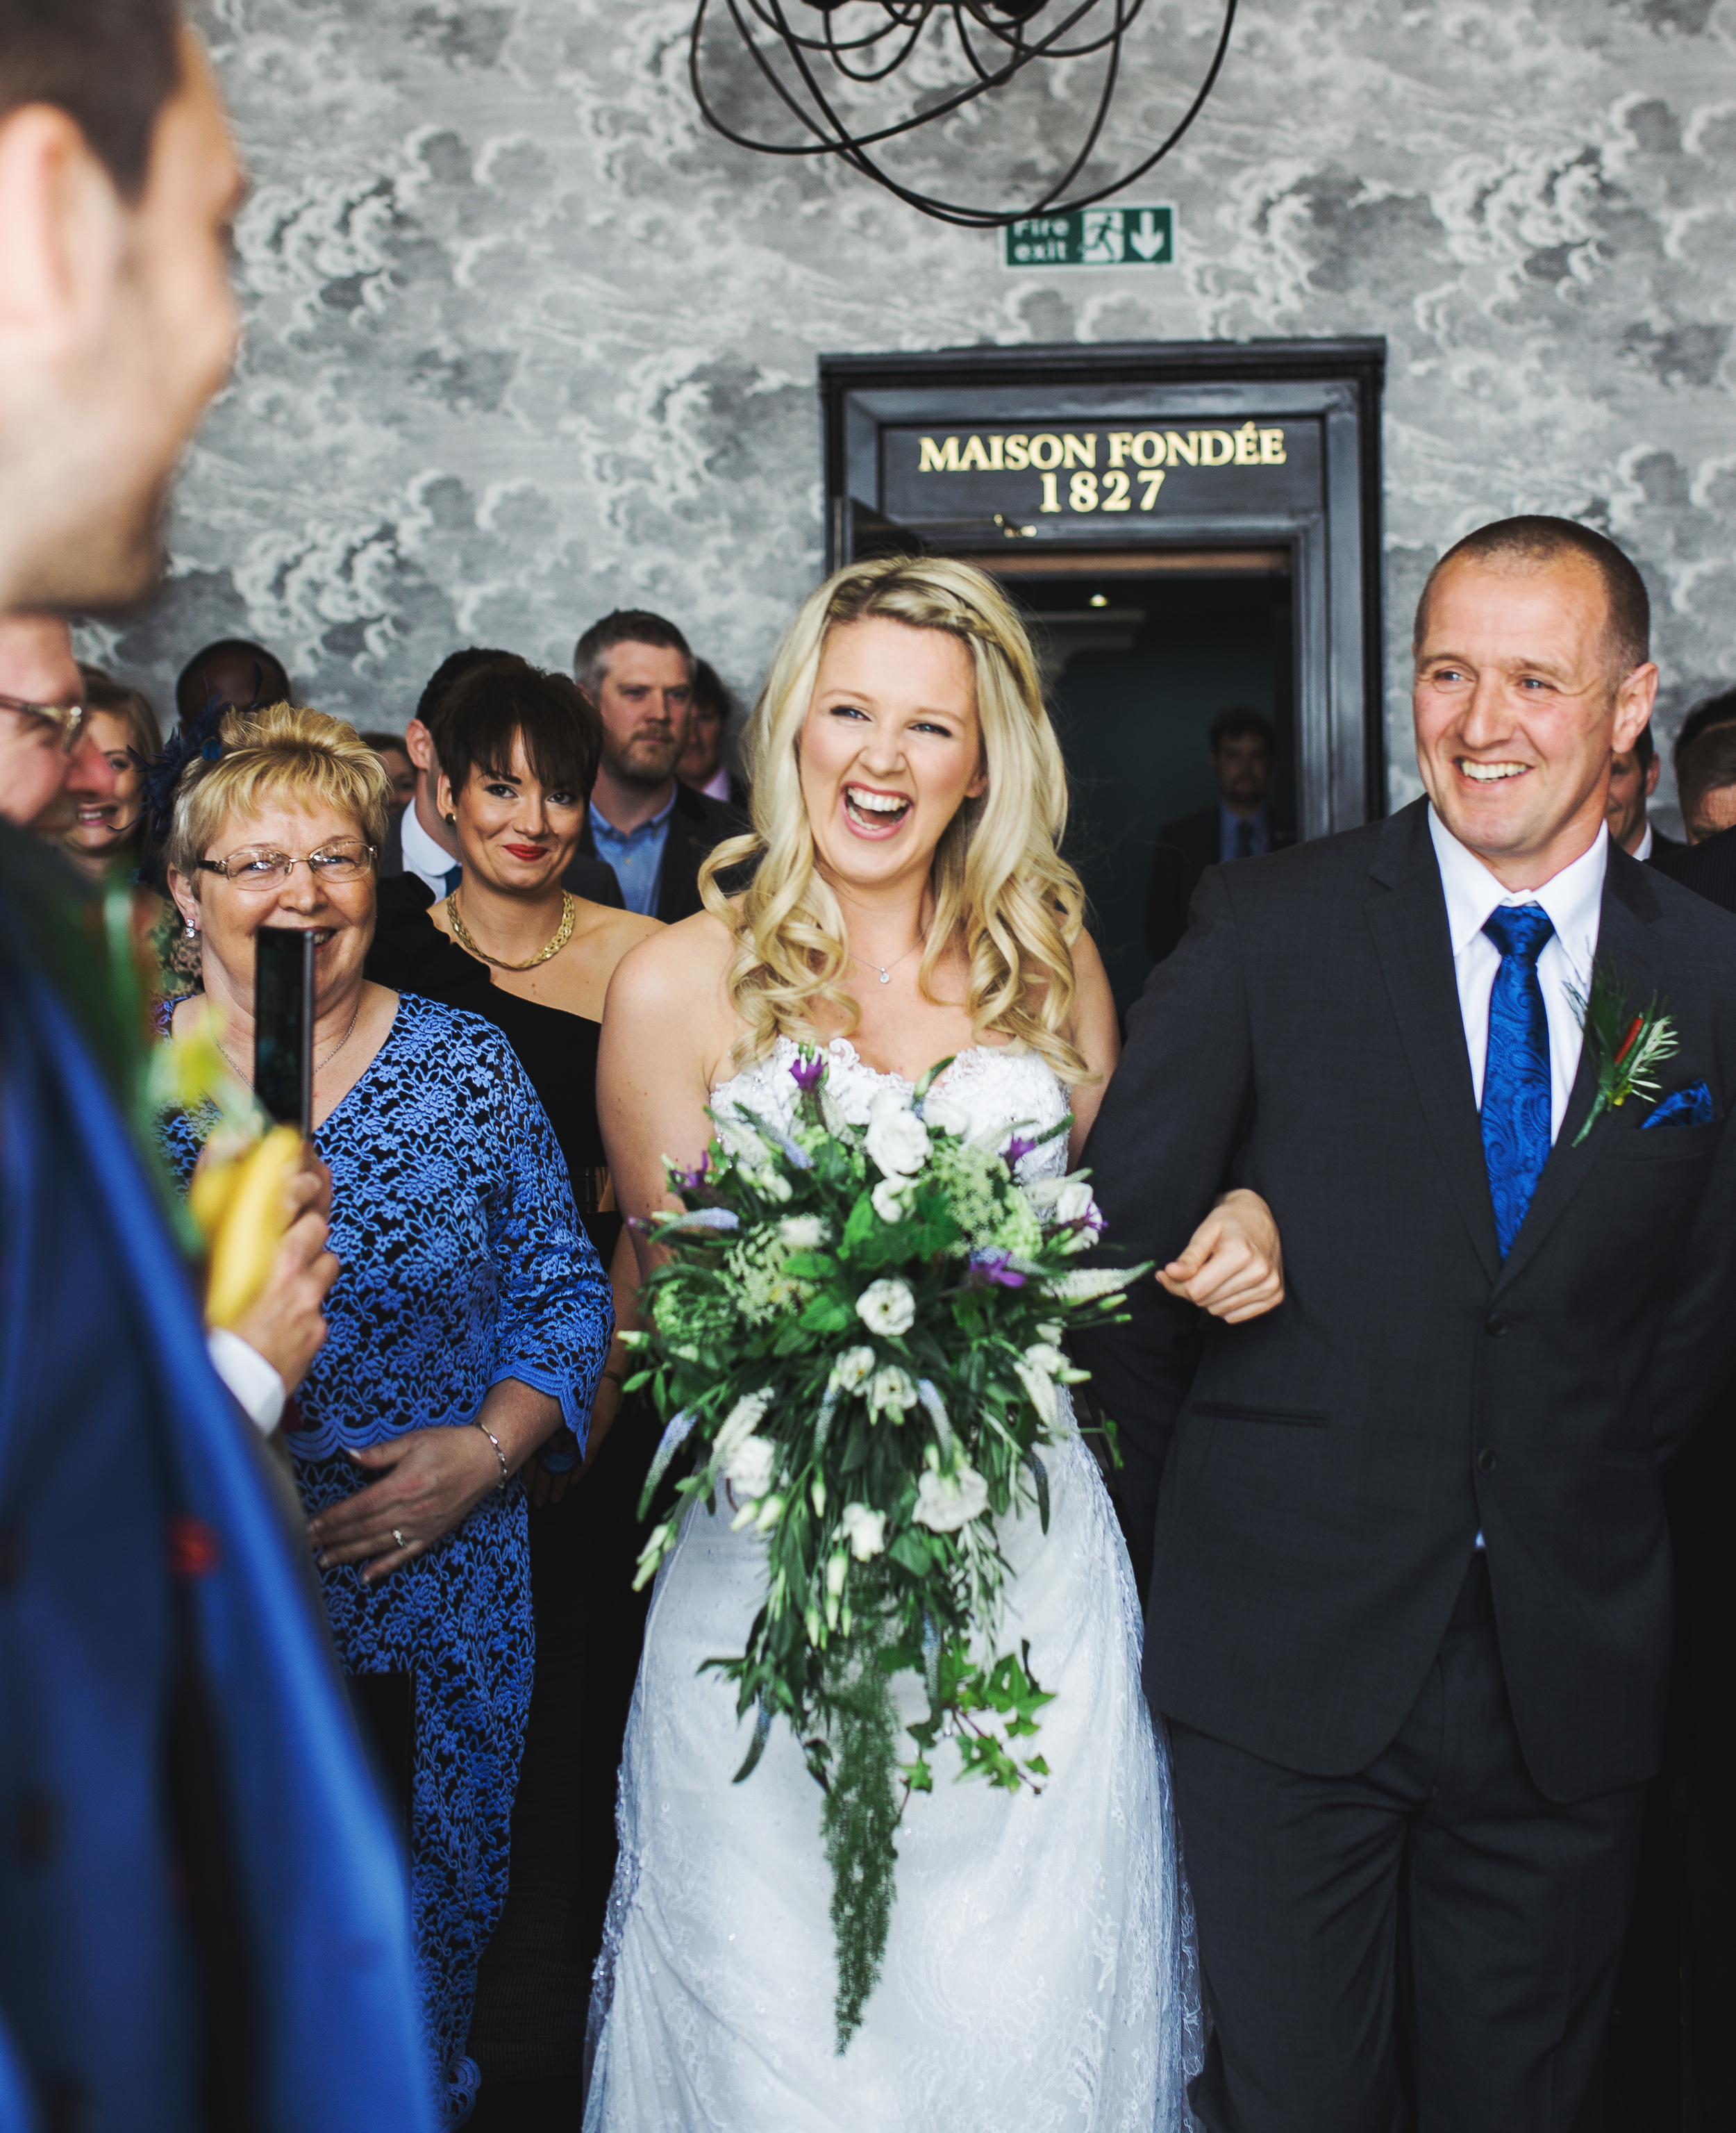 joy on bride's face - churchill hotel york